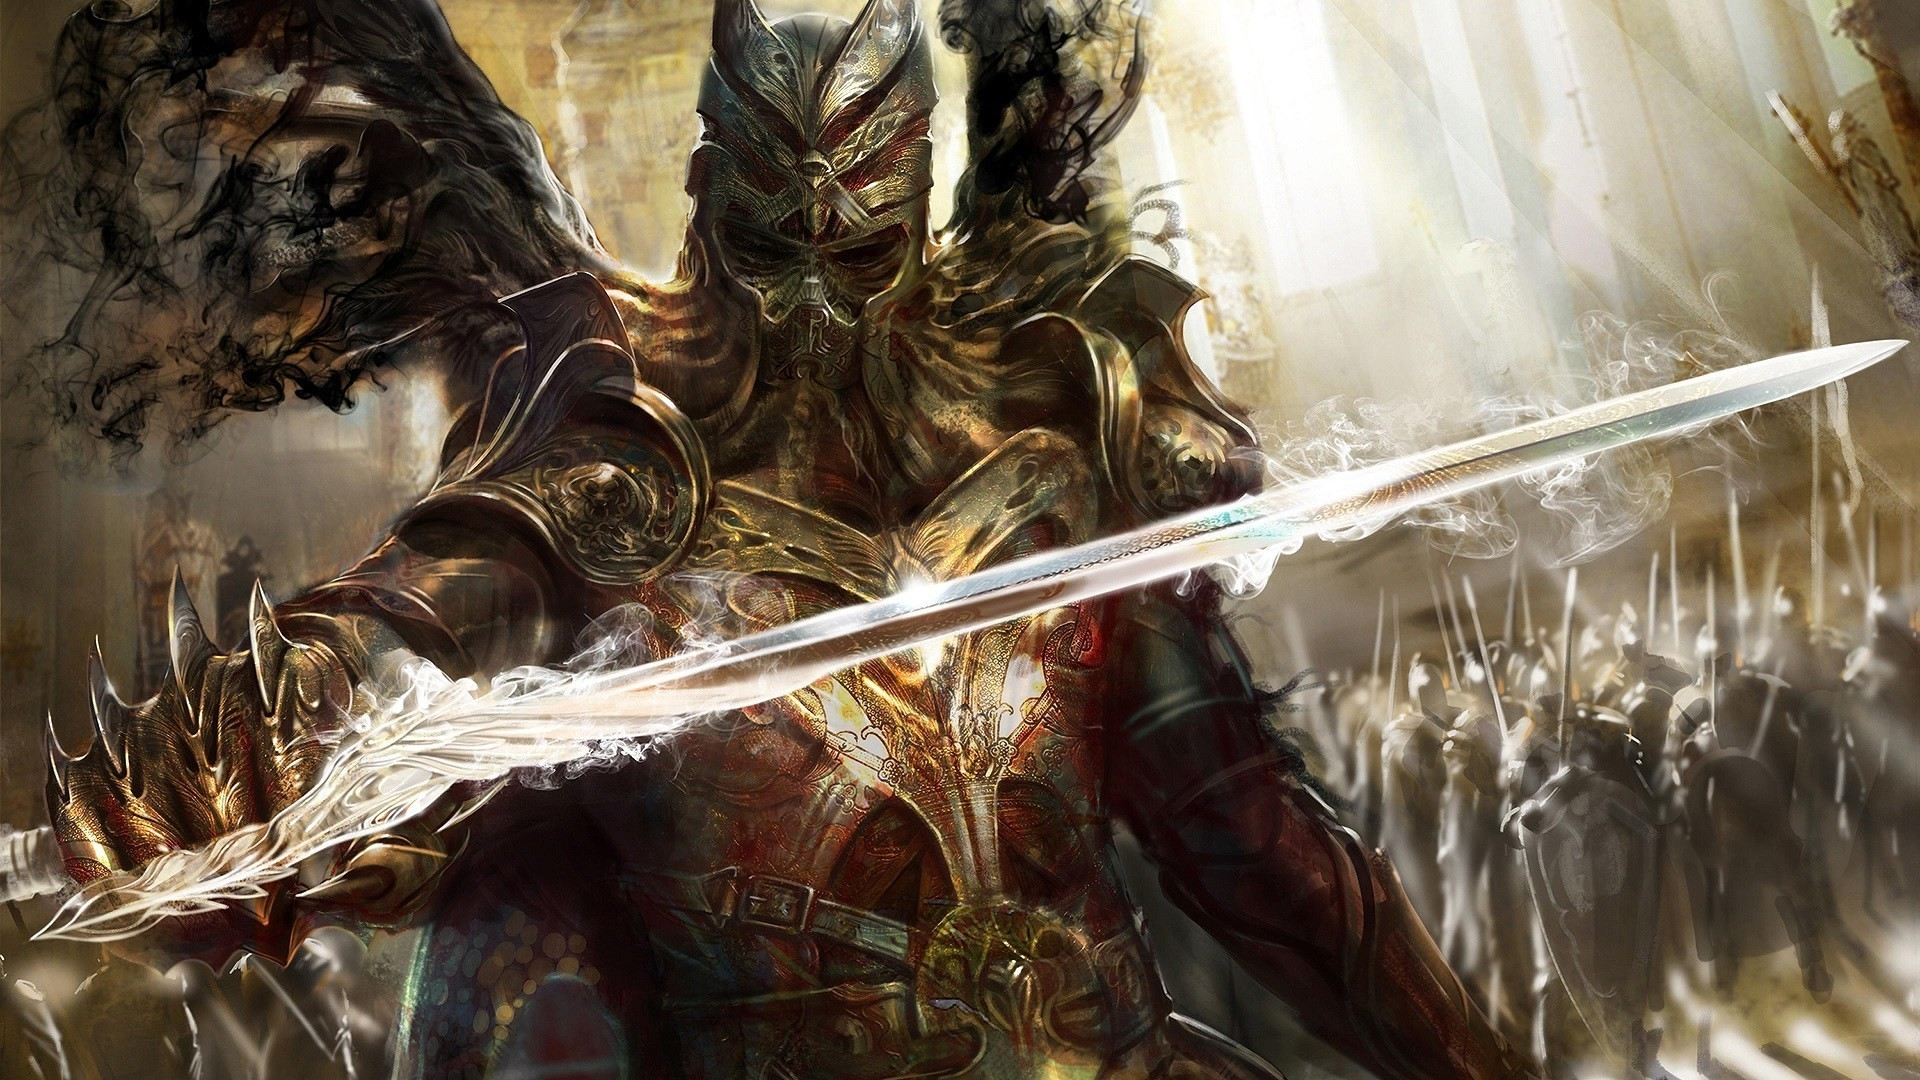 1920x1080 Medieval Knights Wallpaper - Wallpapers Browse ...